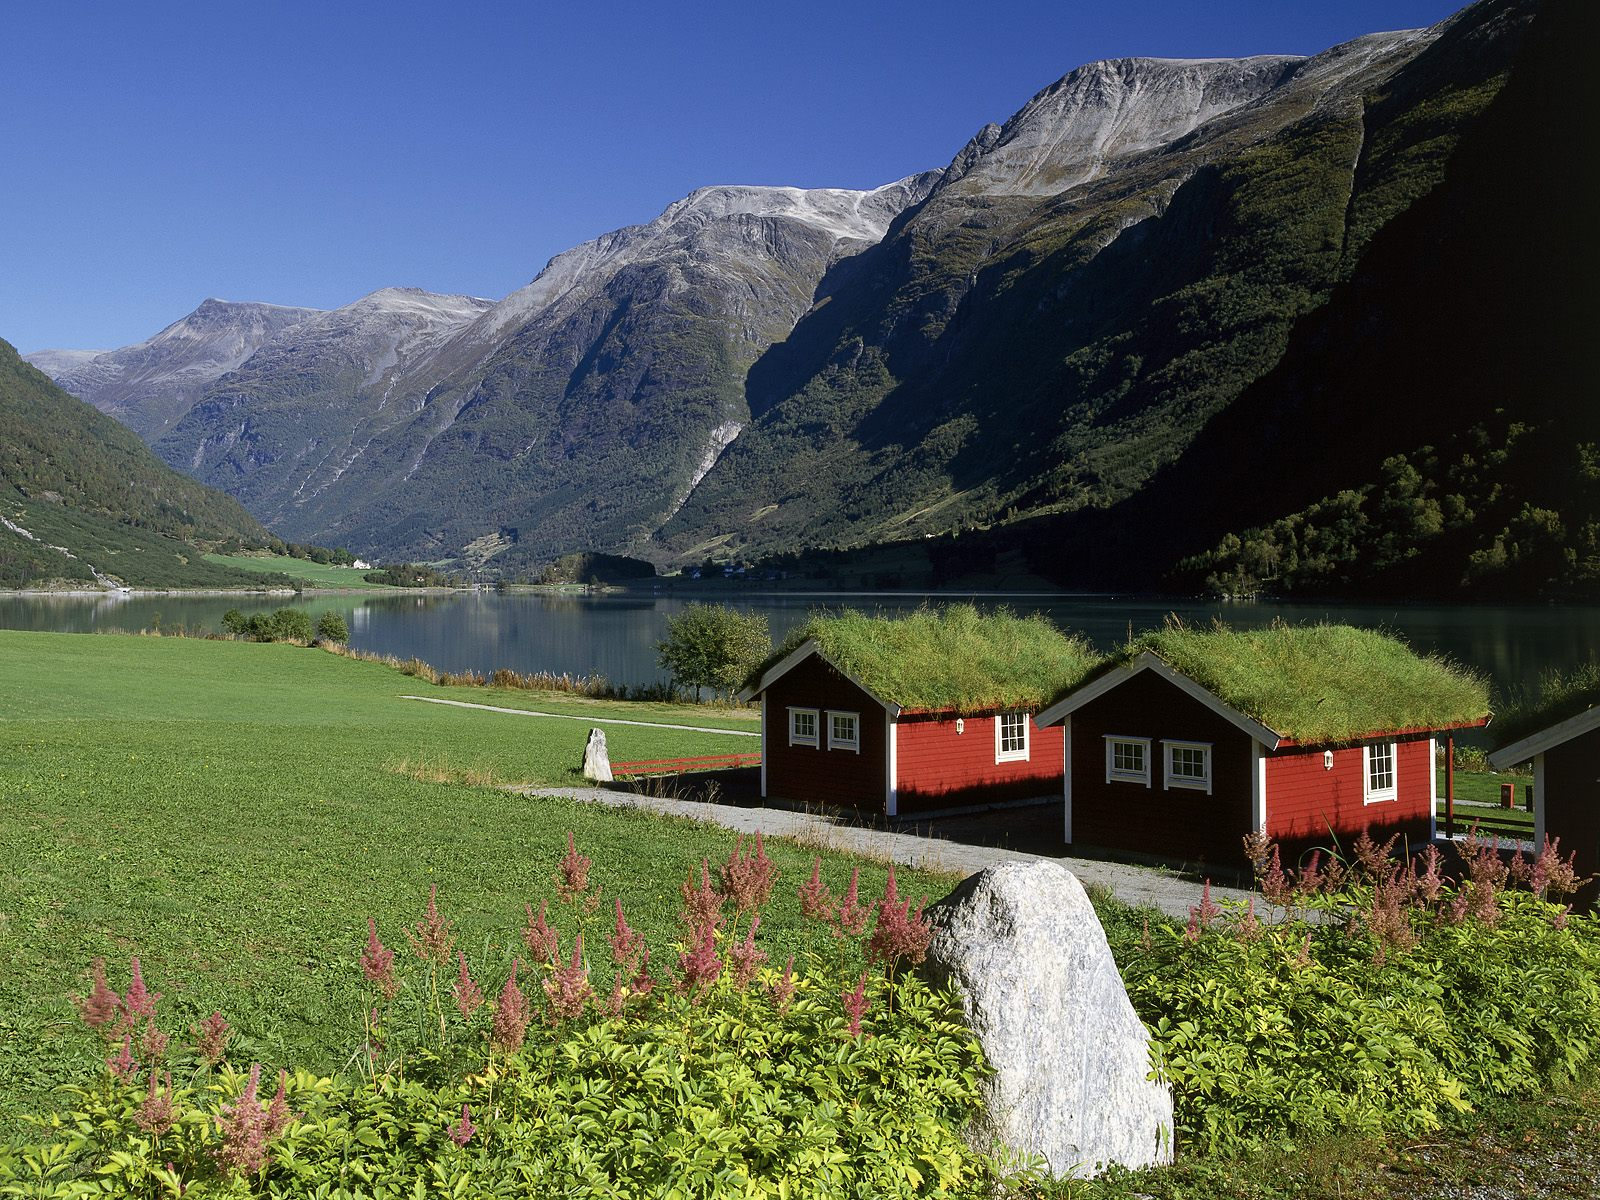 Lakeside Homes Oldenvatnet Norway Picture Lakeside Homes